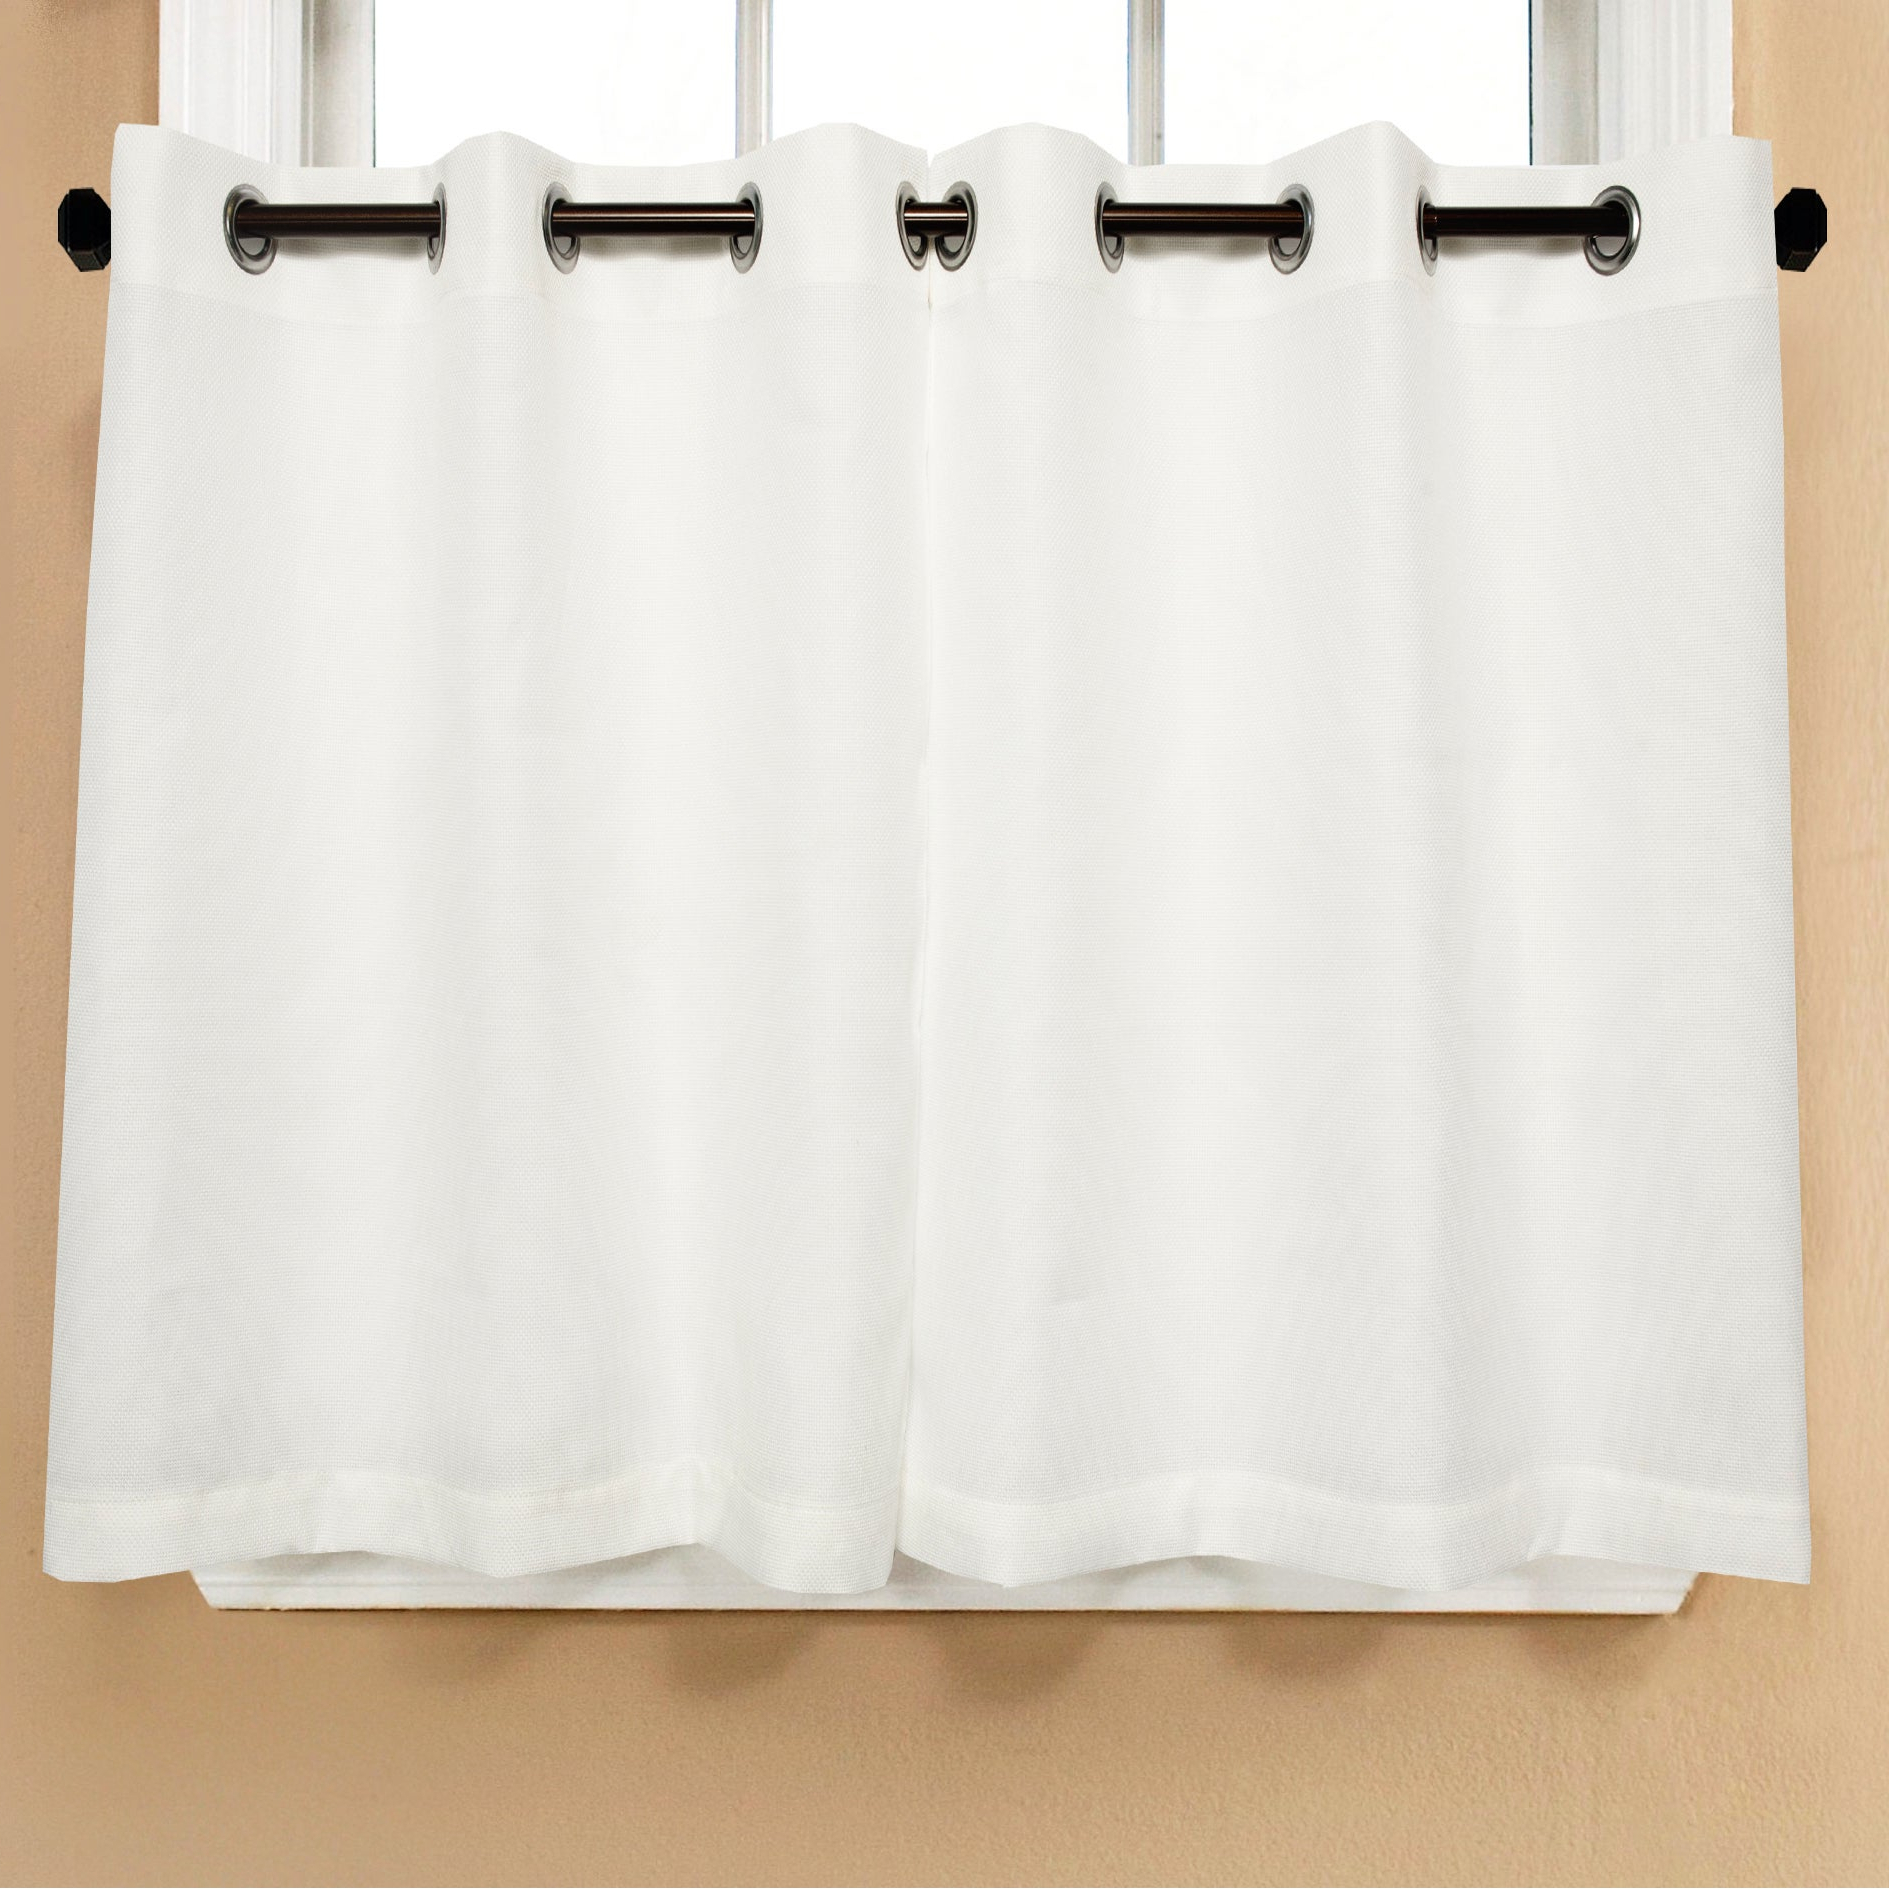 Most Popular Modern Subtle Texture Solid White Kitchen Curtain Parts With Grommets Tier And Valance Options Regarding Modern Subtle Texture Solid White Kitchen Curtain Parts With Grommets  Tier  And Valance Options (Gallery 1 of 20)